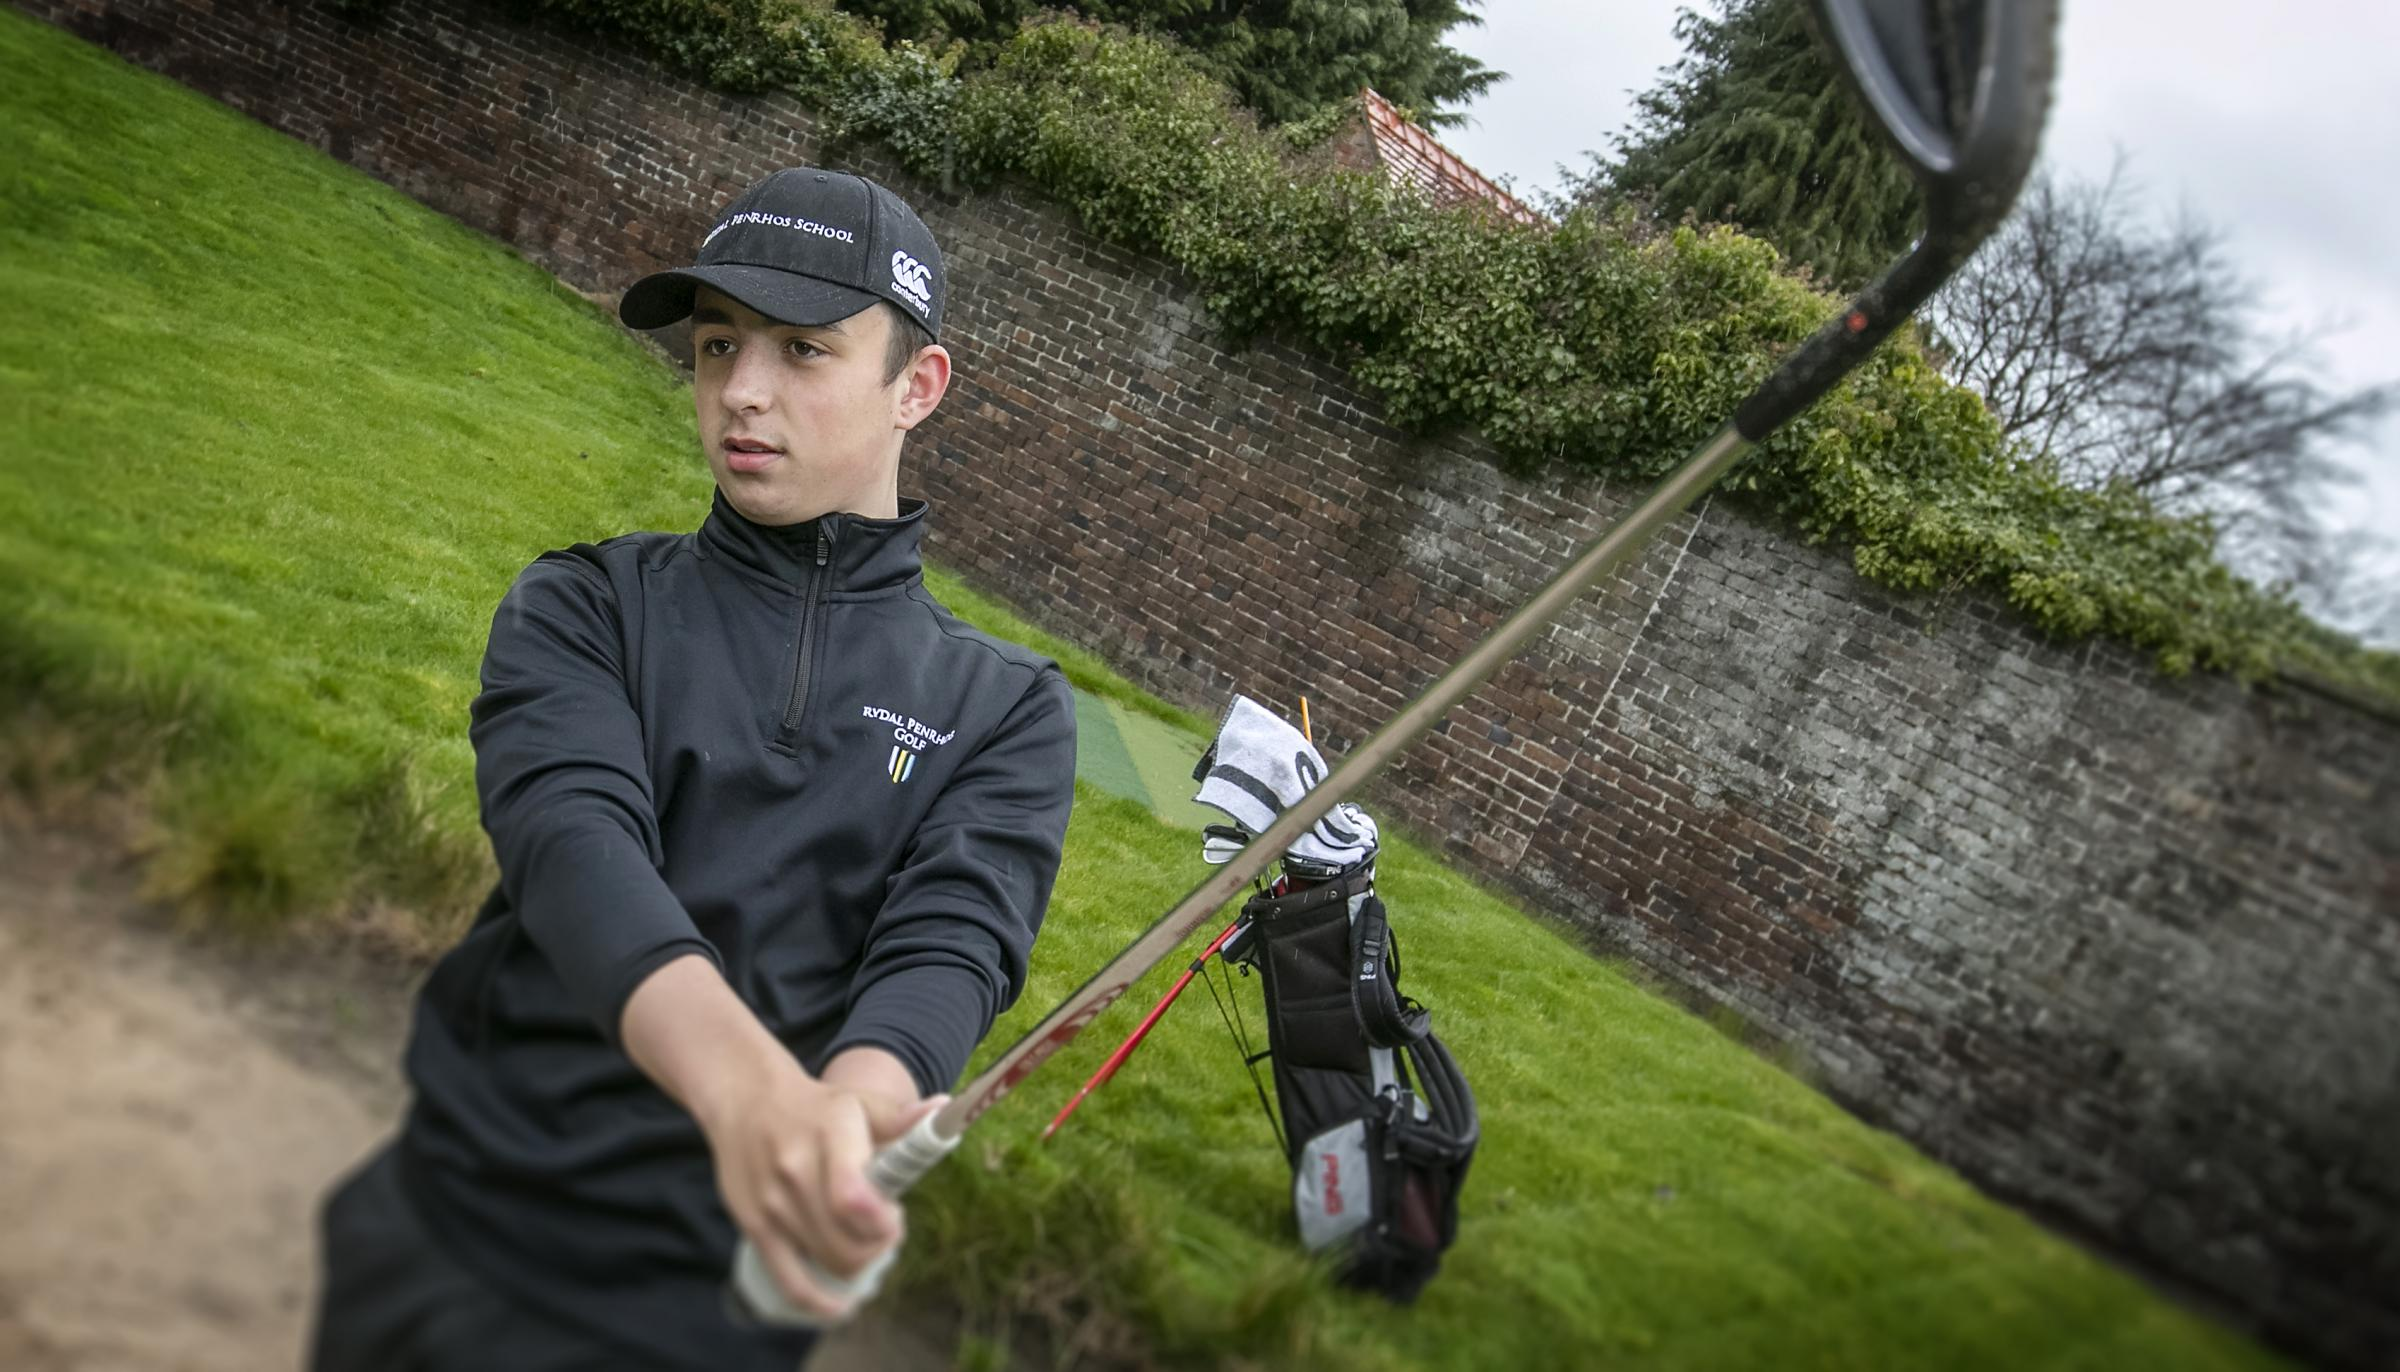 Reuben Bather secured a top-five finish at the Scottish Boys' Open